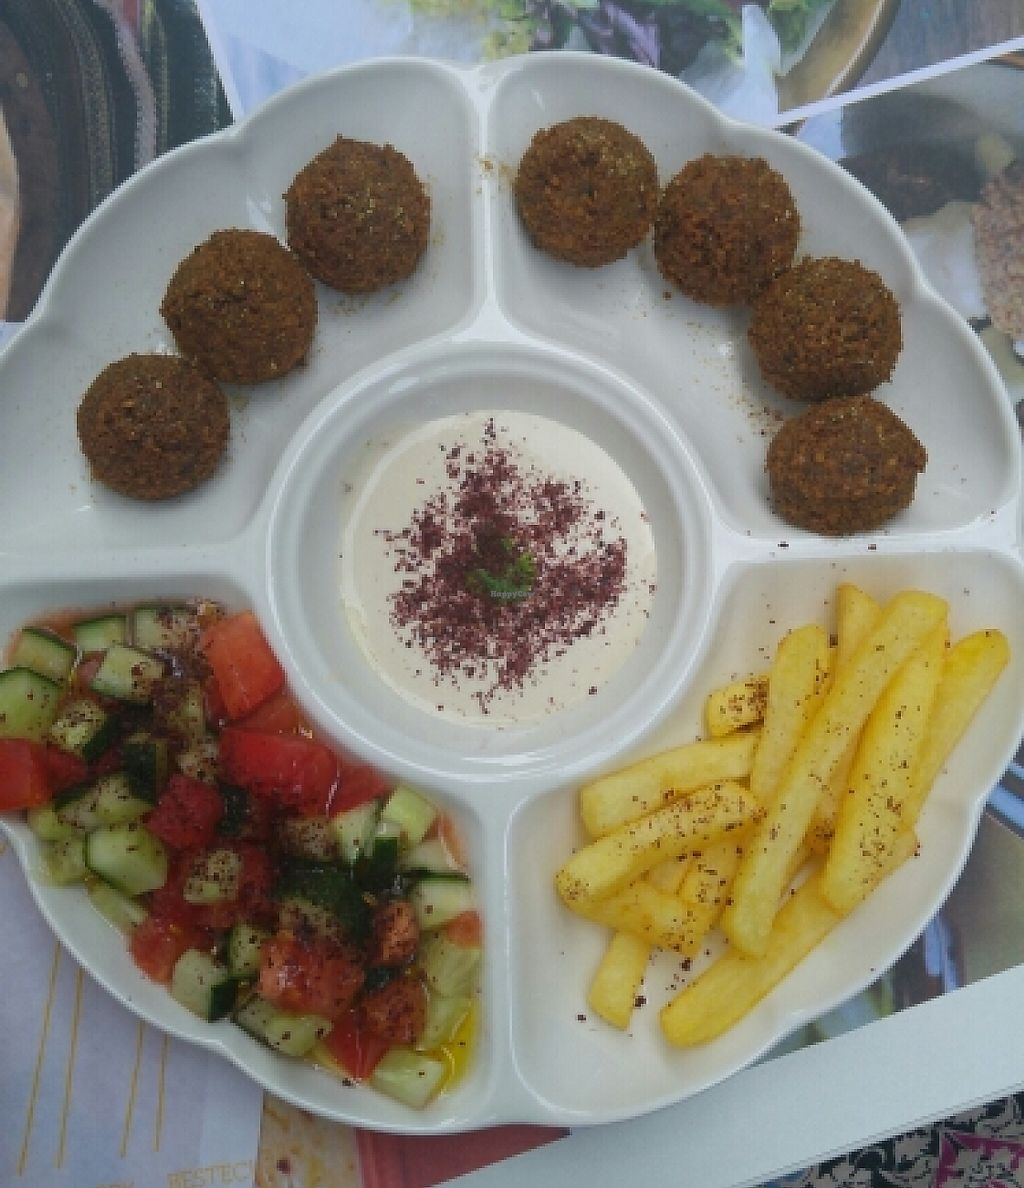 """Photo of Falafel  by <a href=""""/members/profile/Pummell"""">Pummell</a> <br/>Falafel plate <br/> June 23, 2016  - <a href='/contact/abuse/image/74438/235442'>Report</a>"""